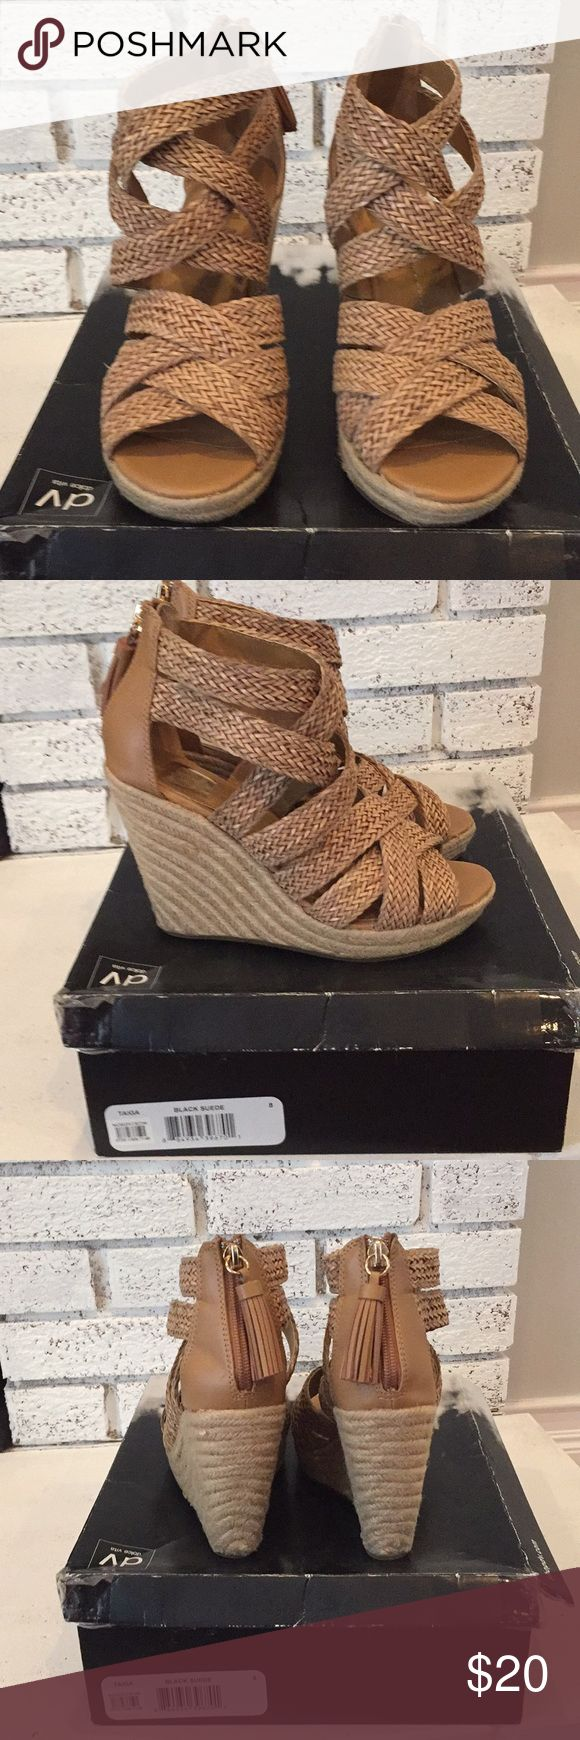 Wedge sandals Dolce vita tan wedge sandals.. gently worn. Dolce Vita Shoes Wedges